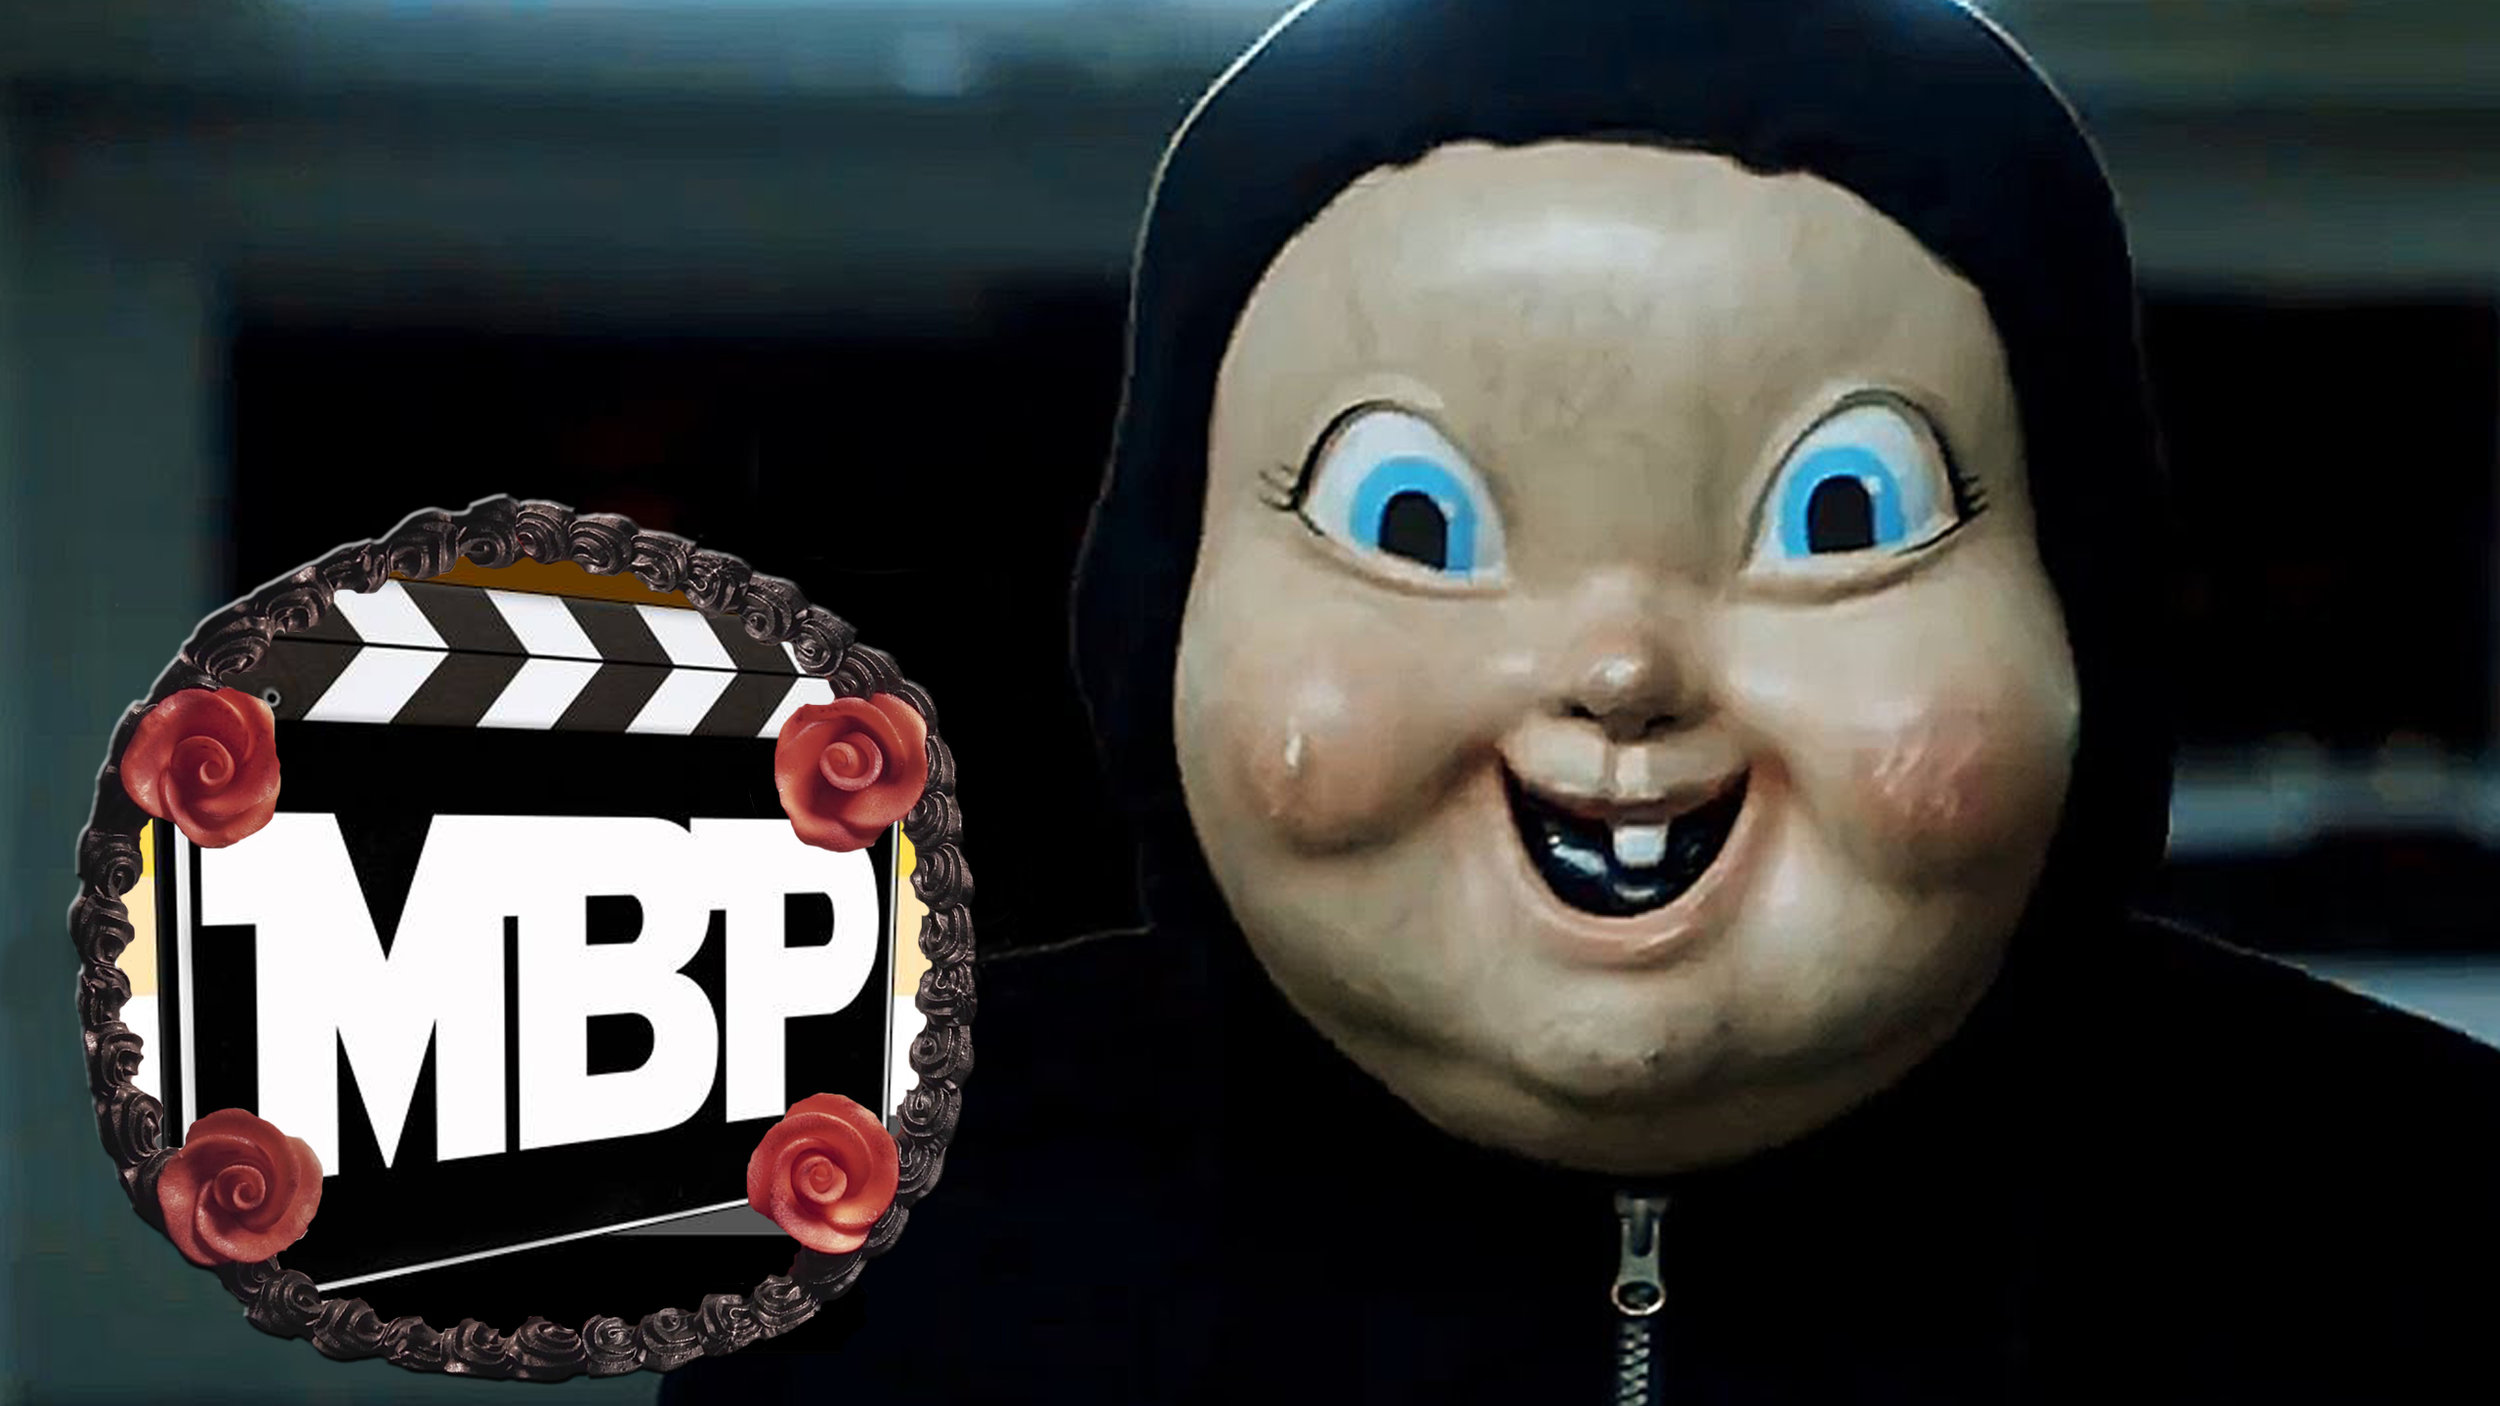 MBP e256 - 'Happy Death Day' (10/20/17)    Happy Death Day! Blow out your candles, turn the lights down low, and join us as we review this slick, time-loop slasher flick!